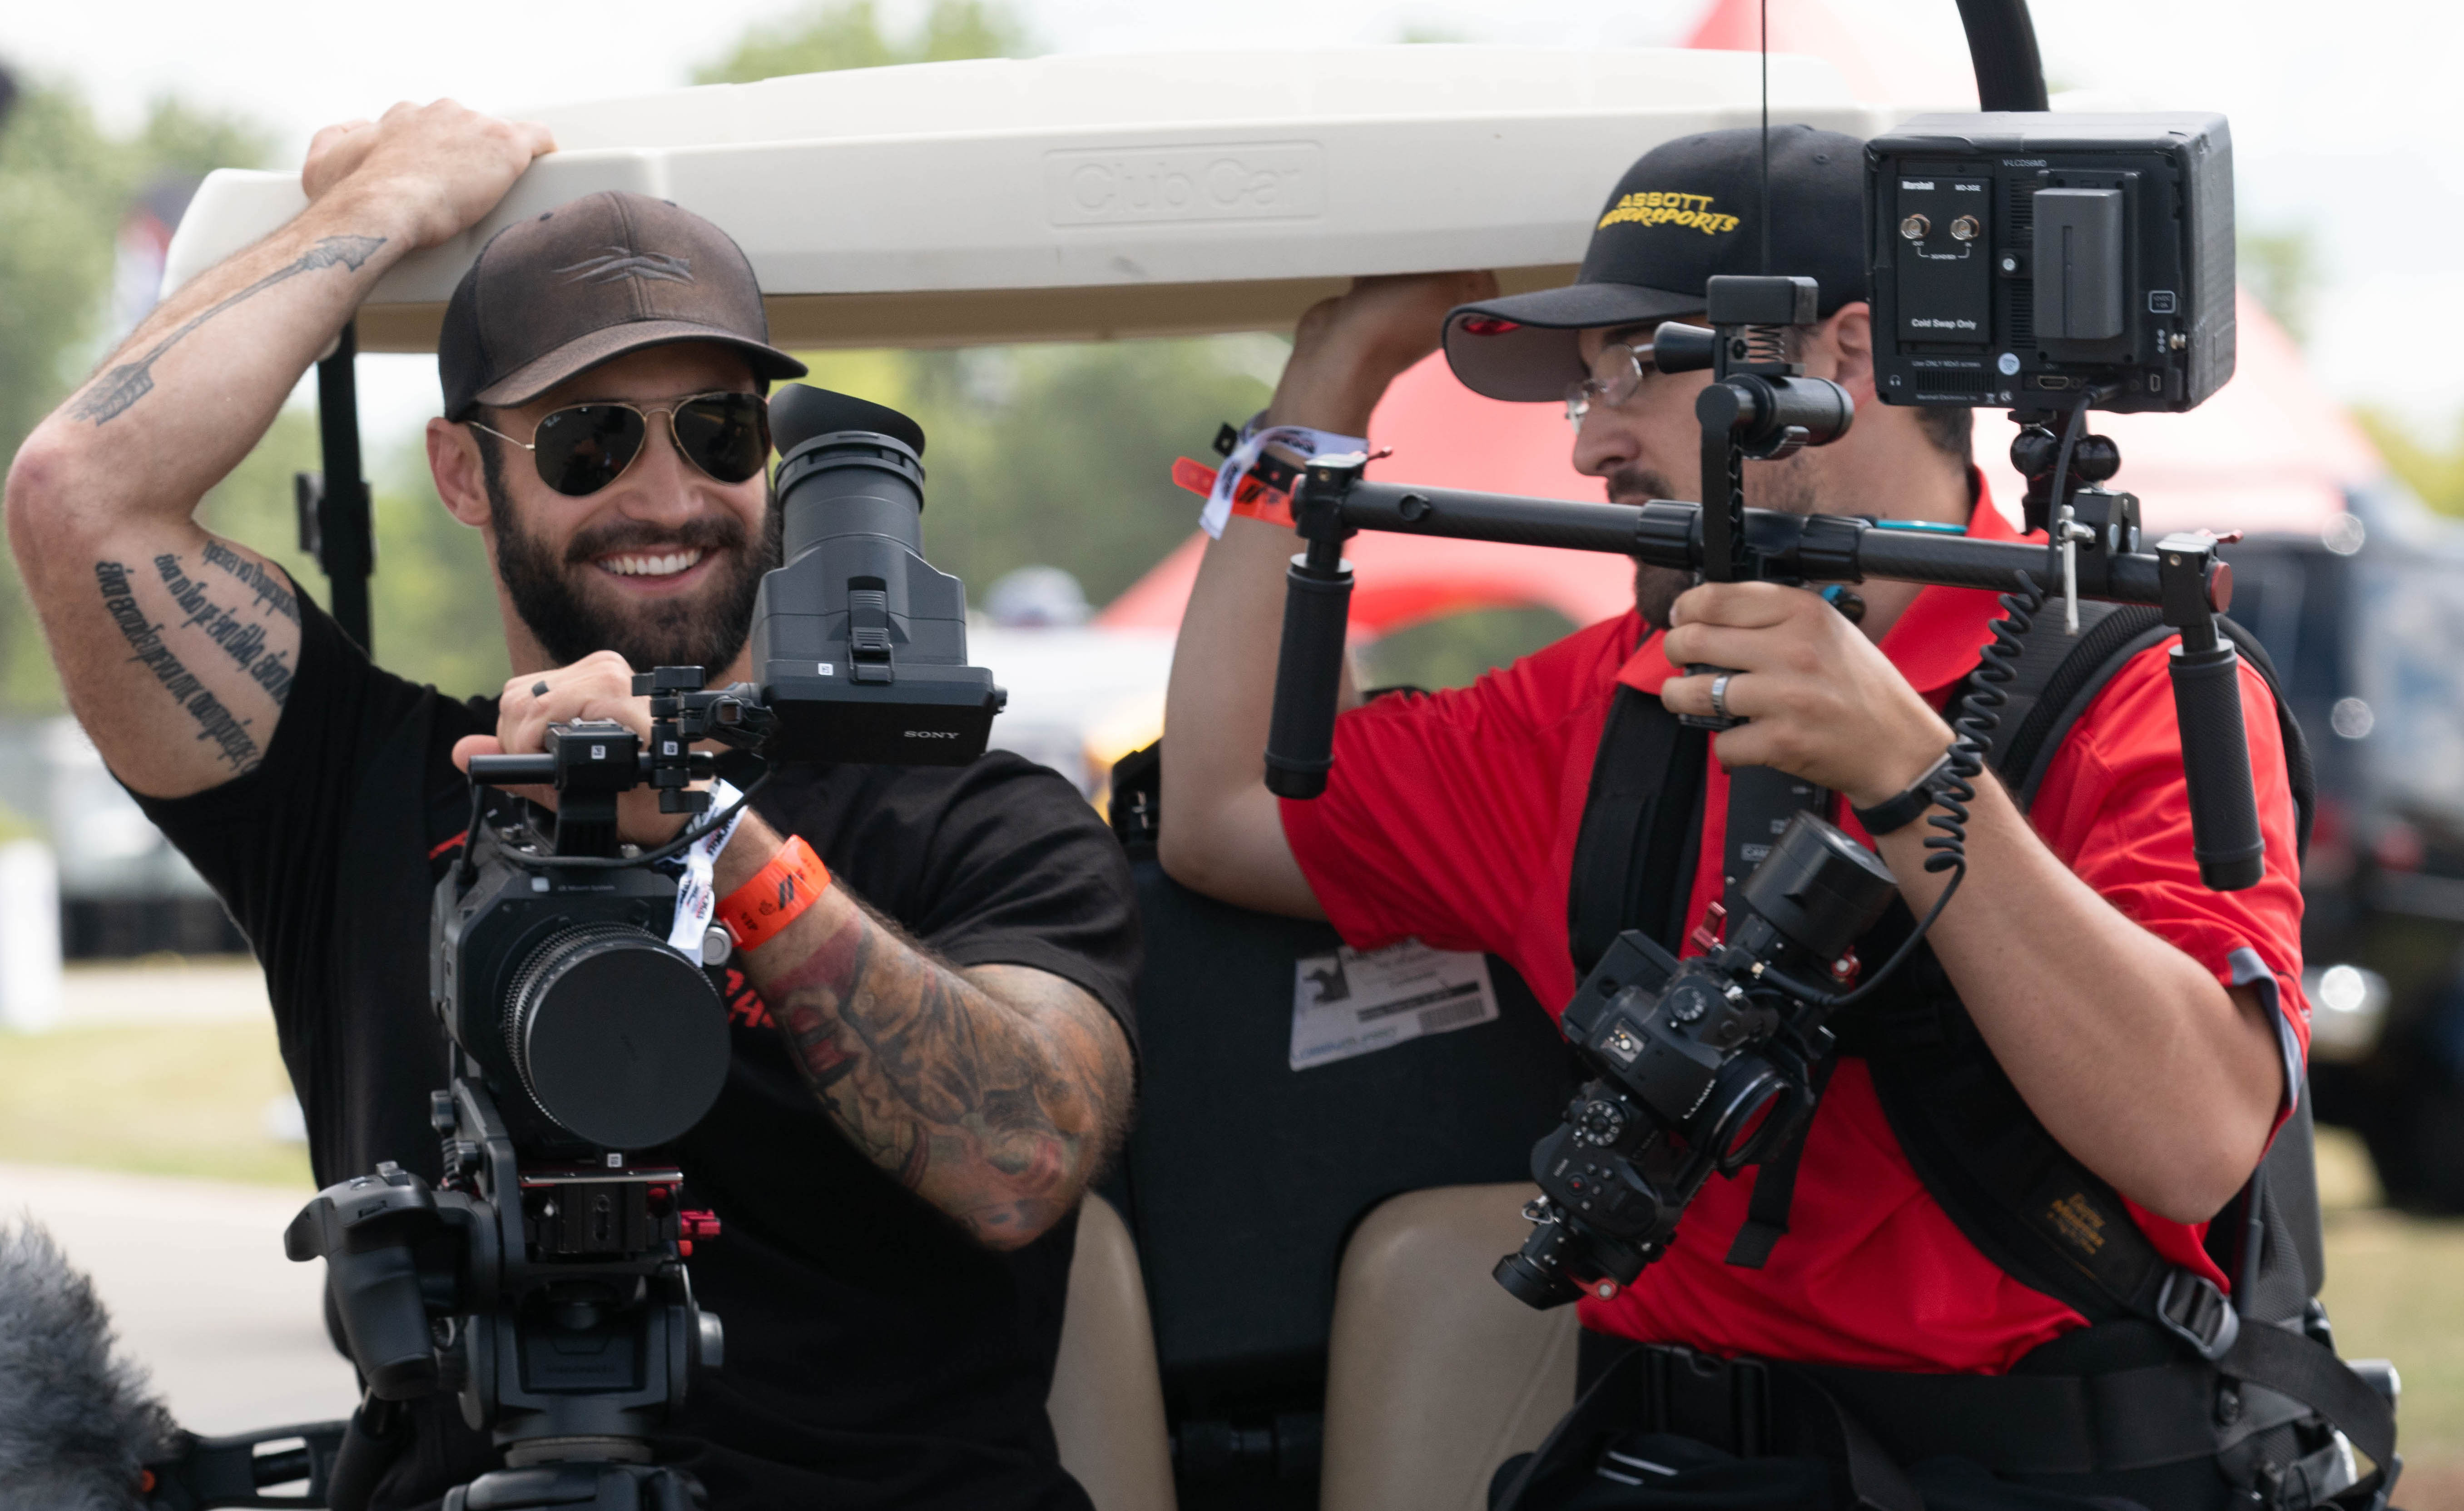 Two men on a golf cart with video equipment